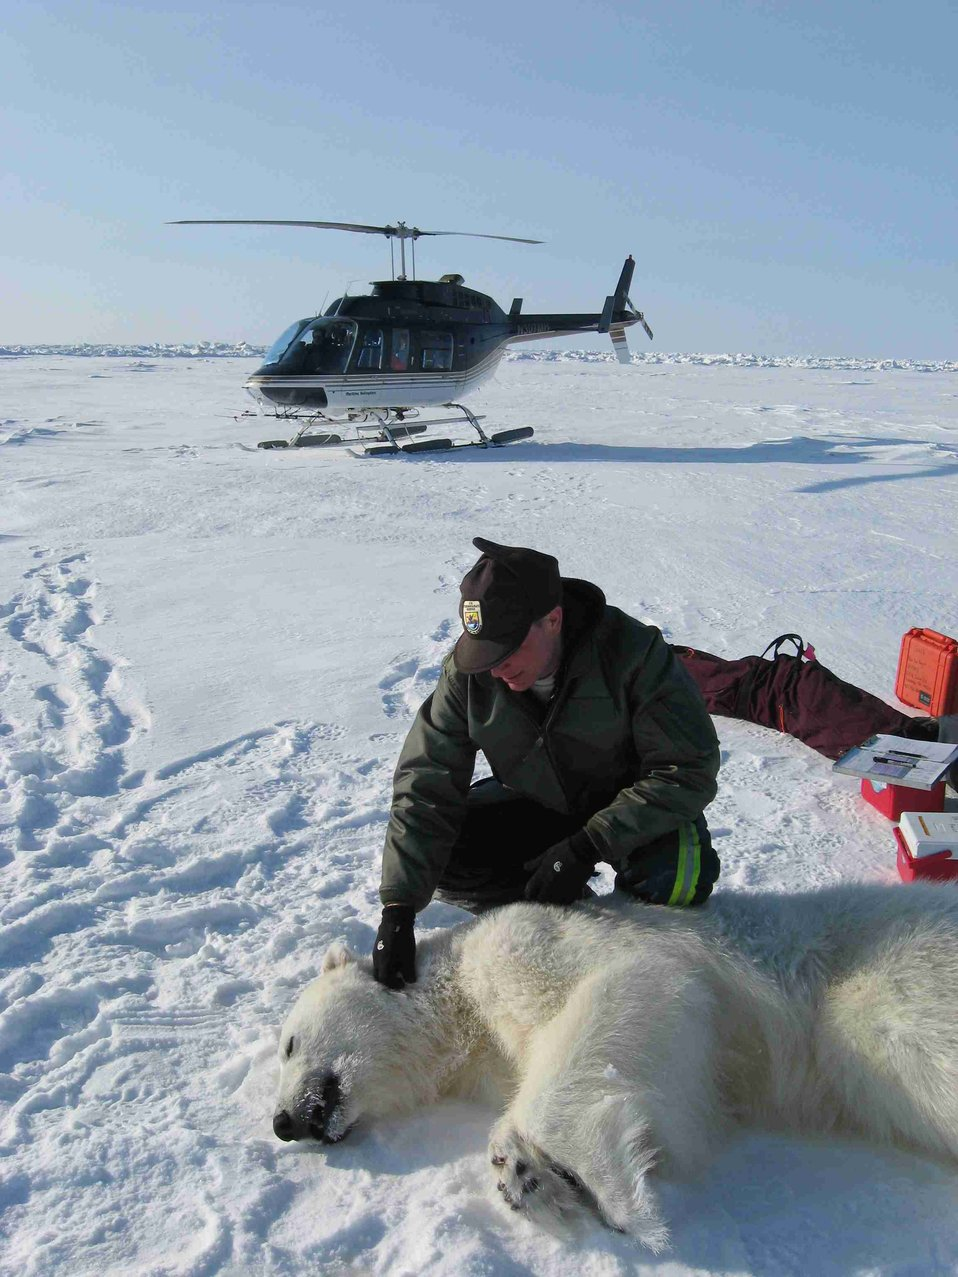 A USFWS Polar Bear Biologist Working With a Bear